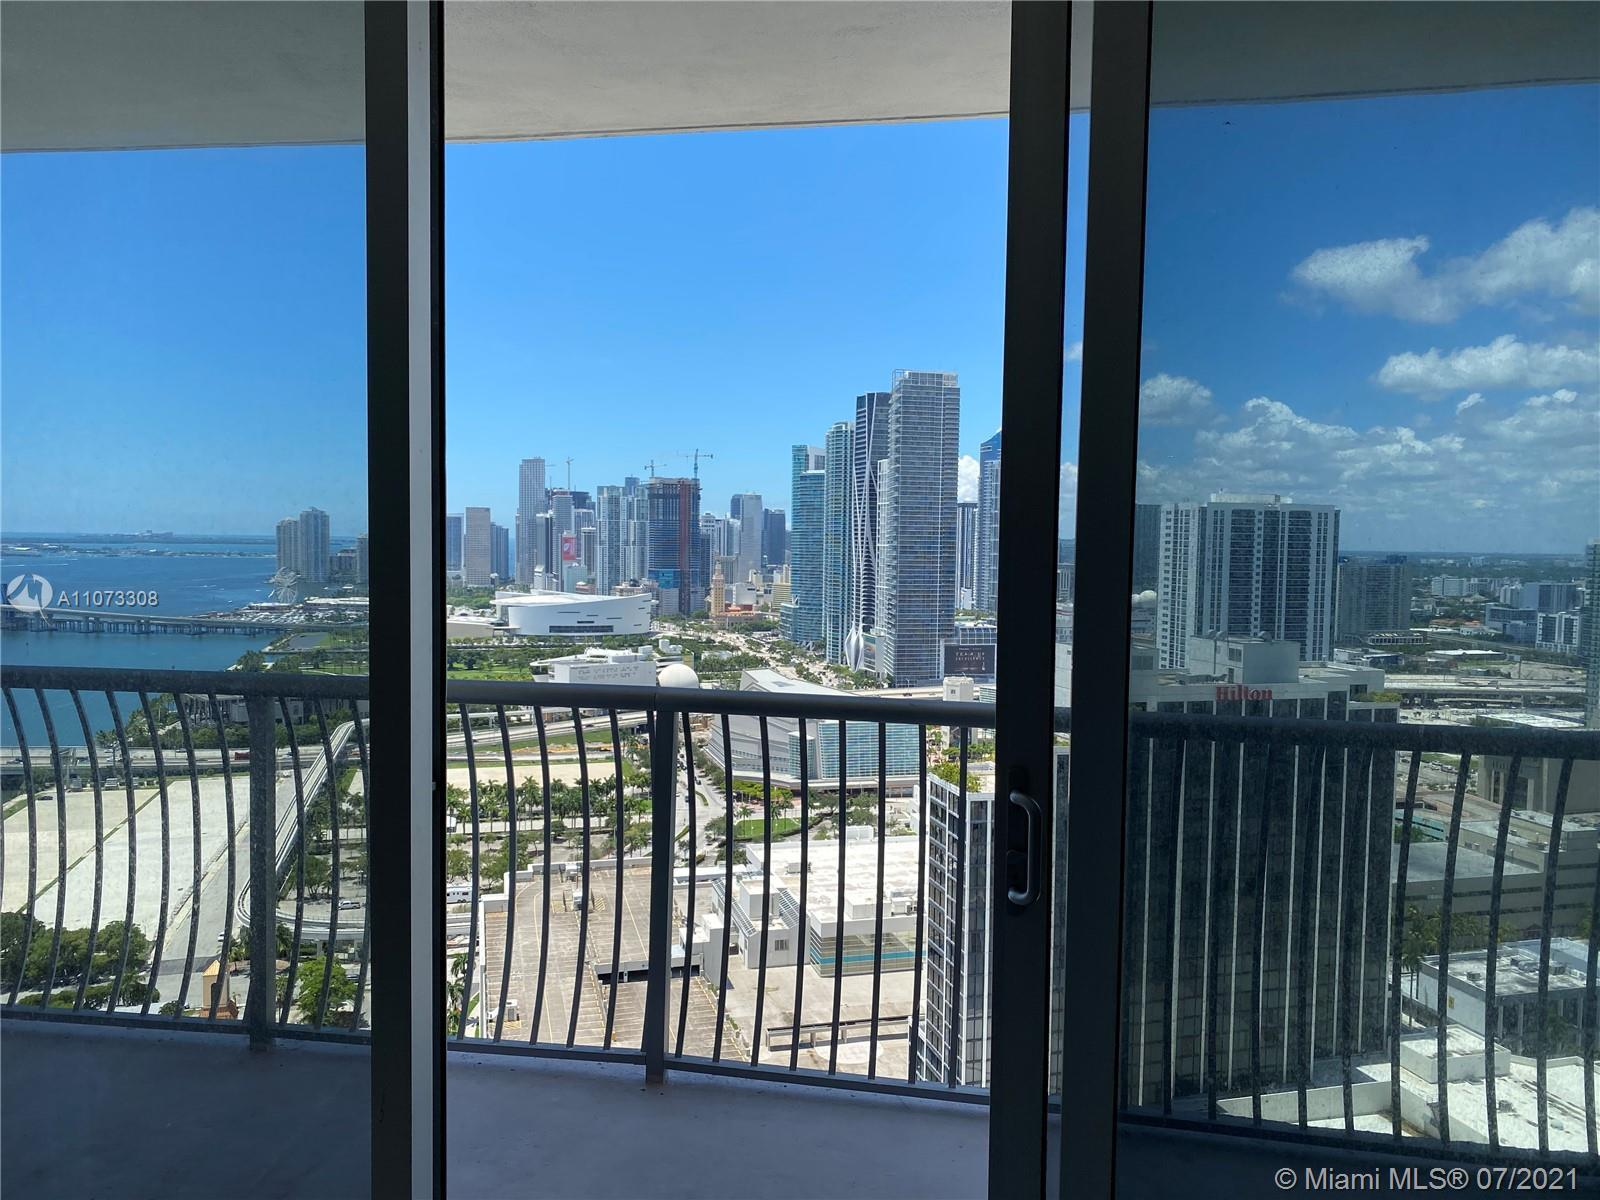 BRIGHT AND SPACIOUS 1BED/1BATH UNIT AT OPERA TOWER WITH GREAT VIEW OF DOWNTOWN AND PARTIAL BAY VIEWS